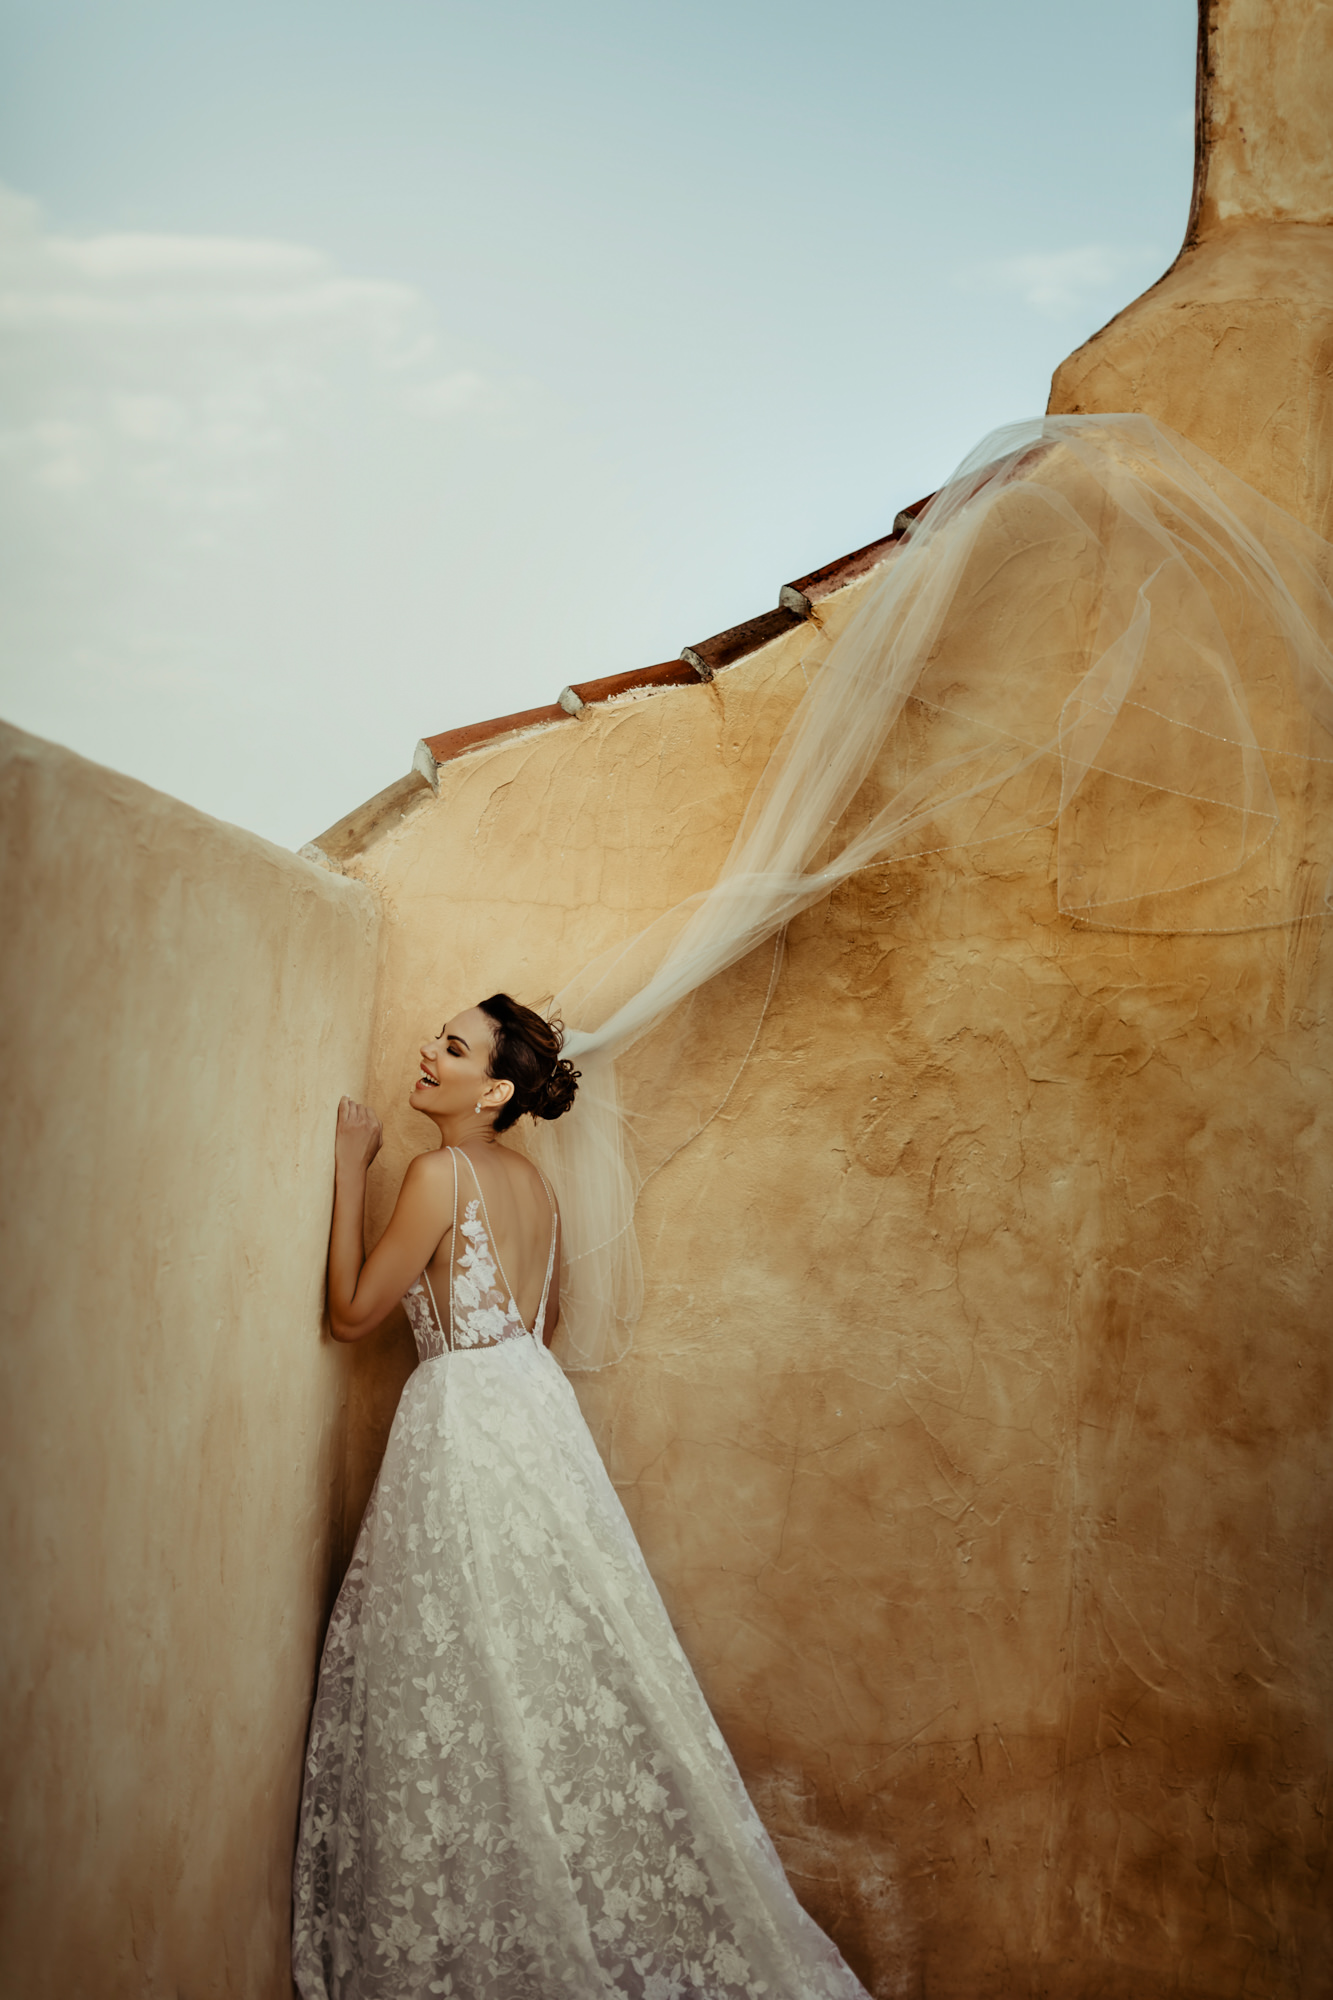 Bride with flying veil photo by David Bastianoni